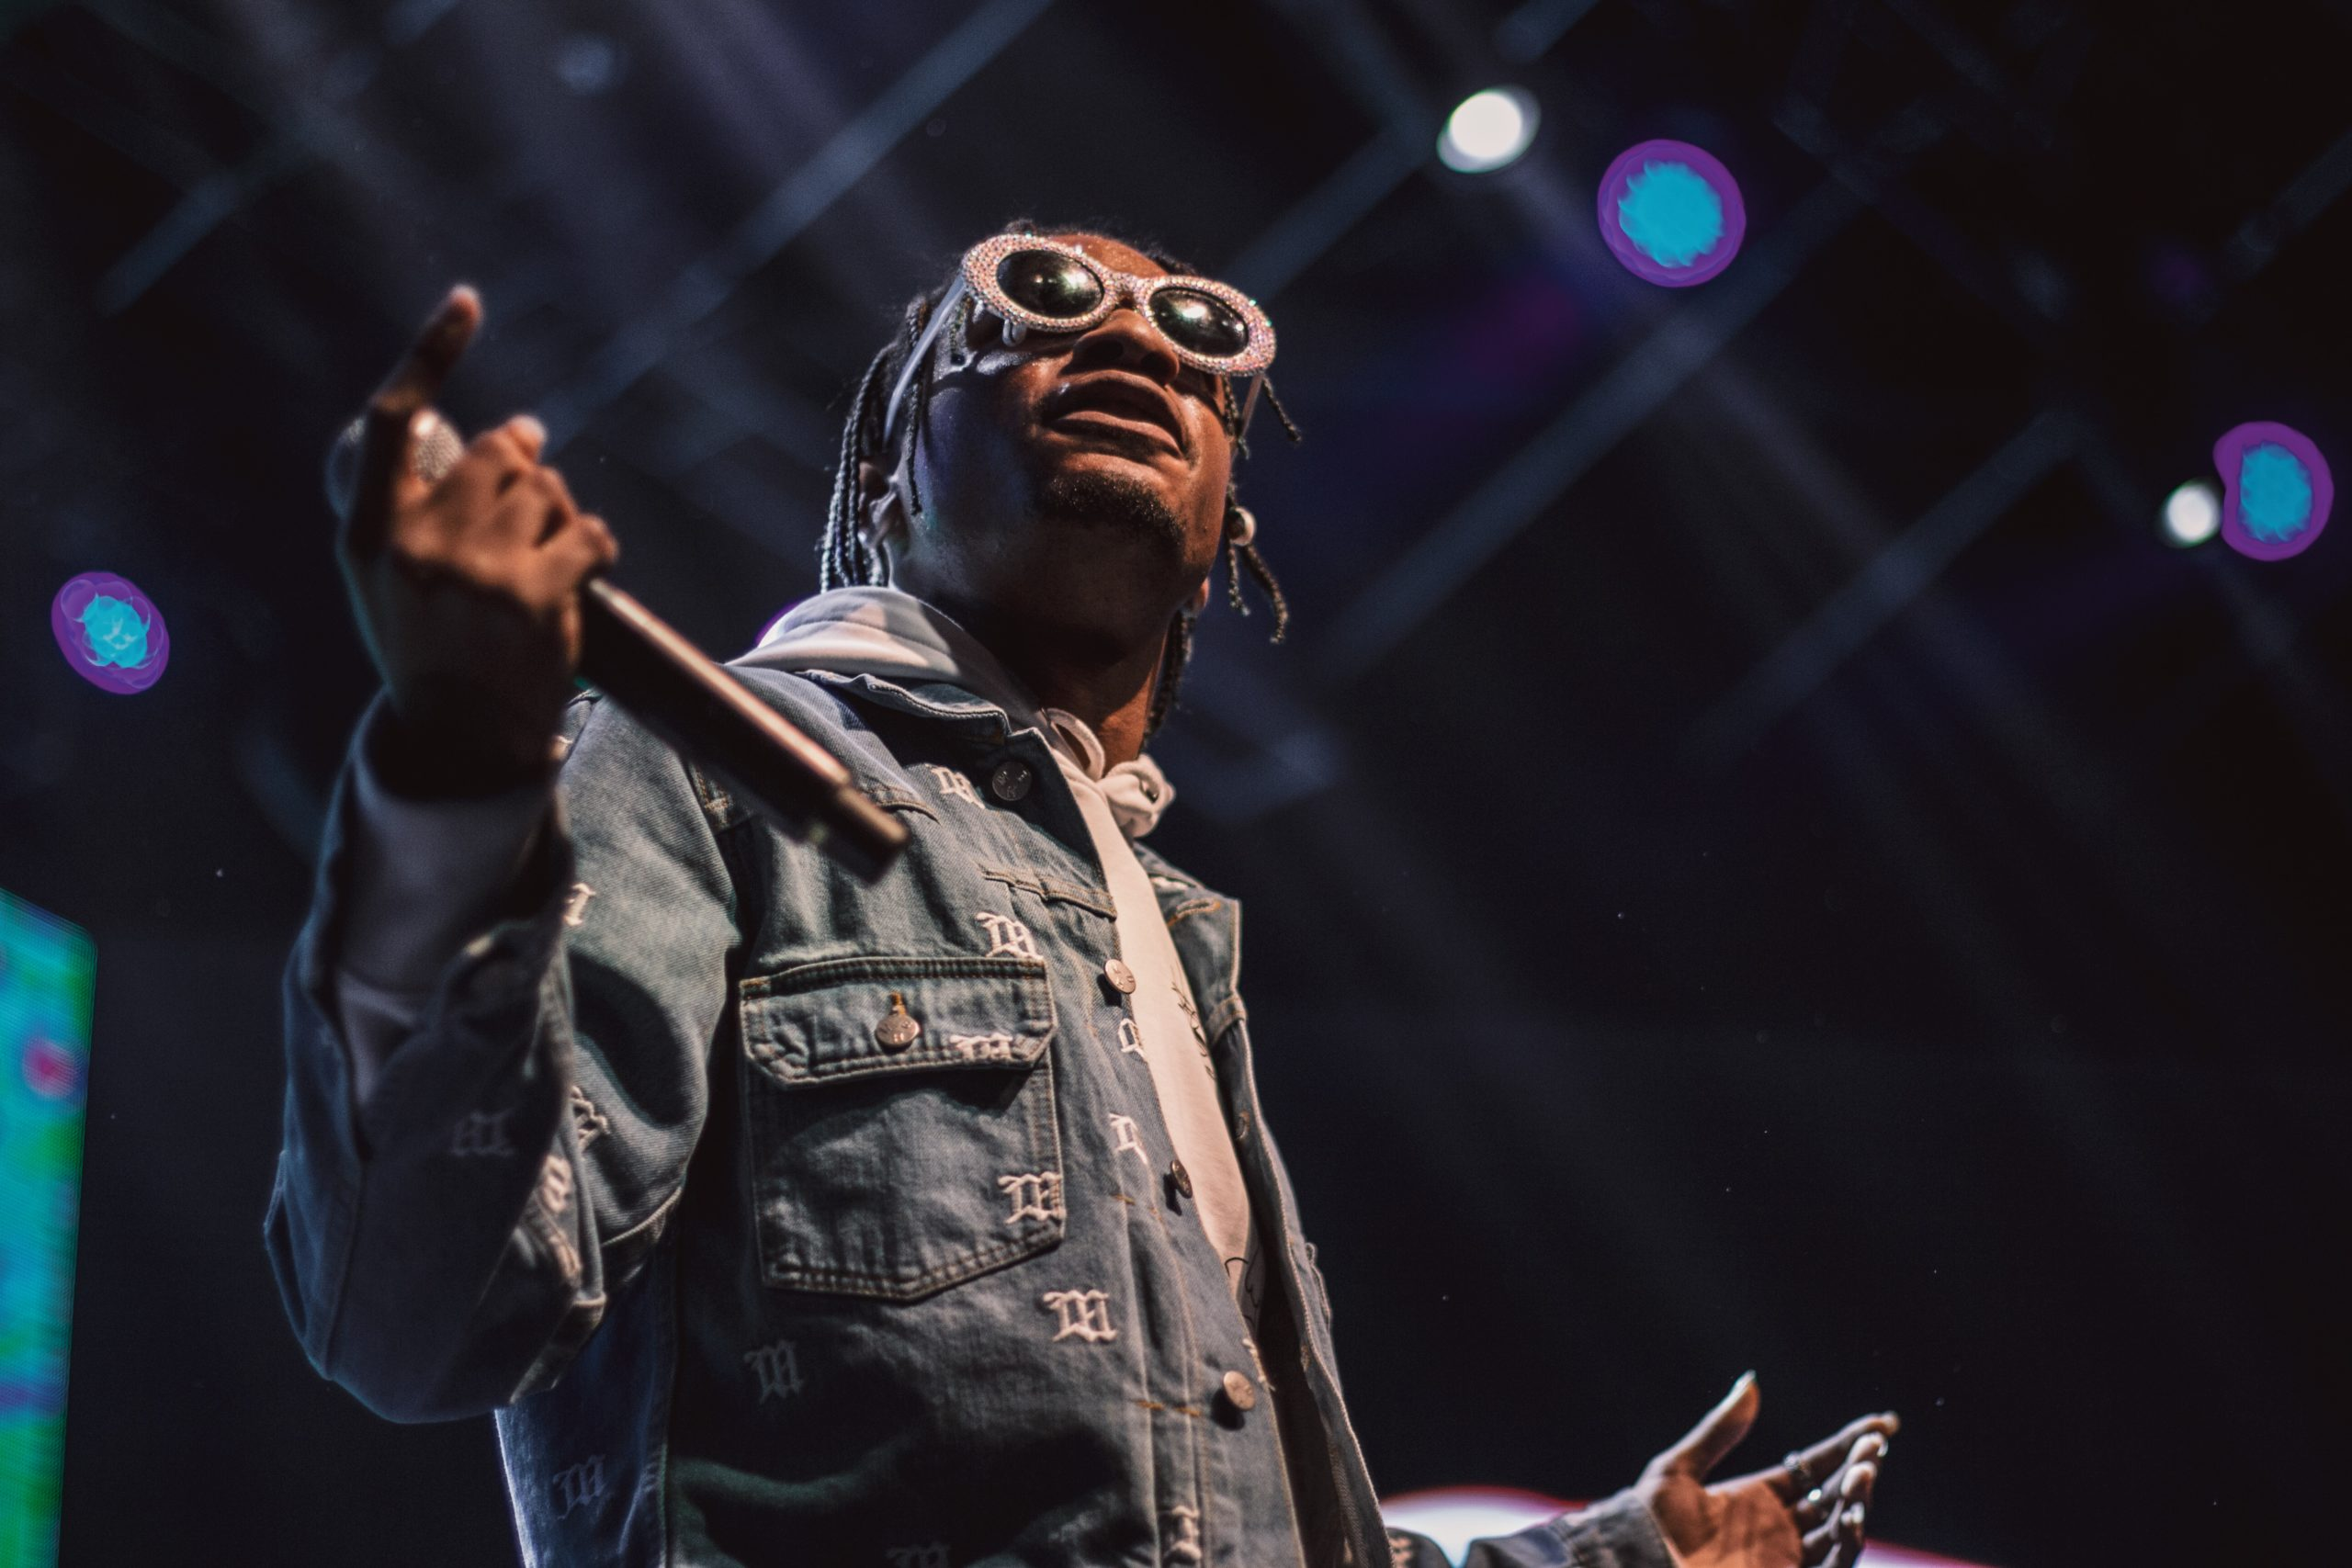 Wiz Khalifa live at Rebel for Canadian Music Week (May 2019)